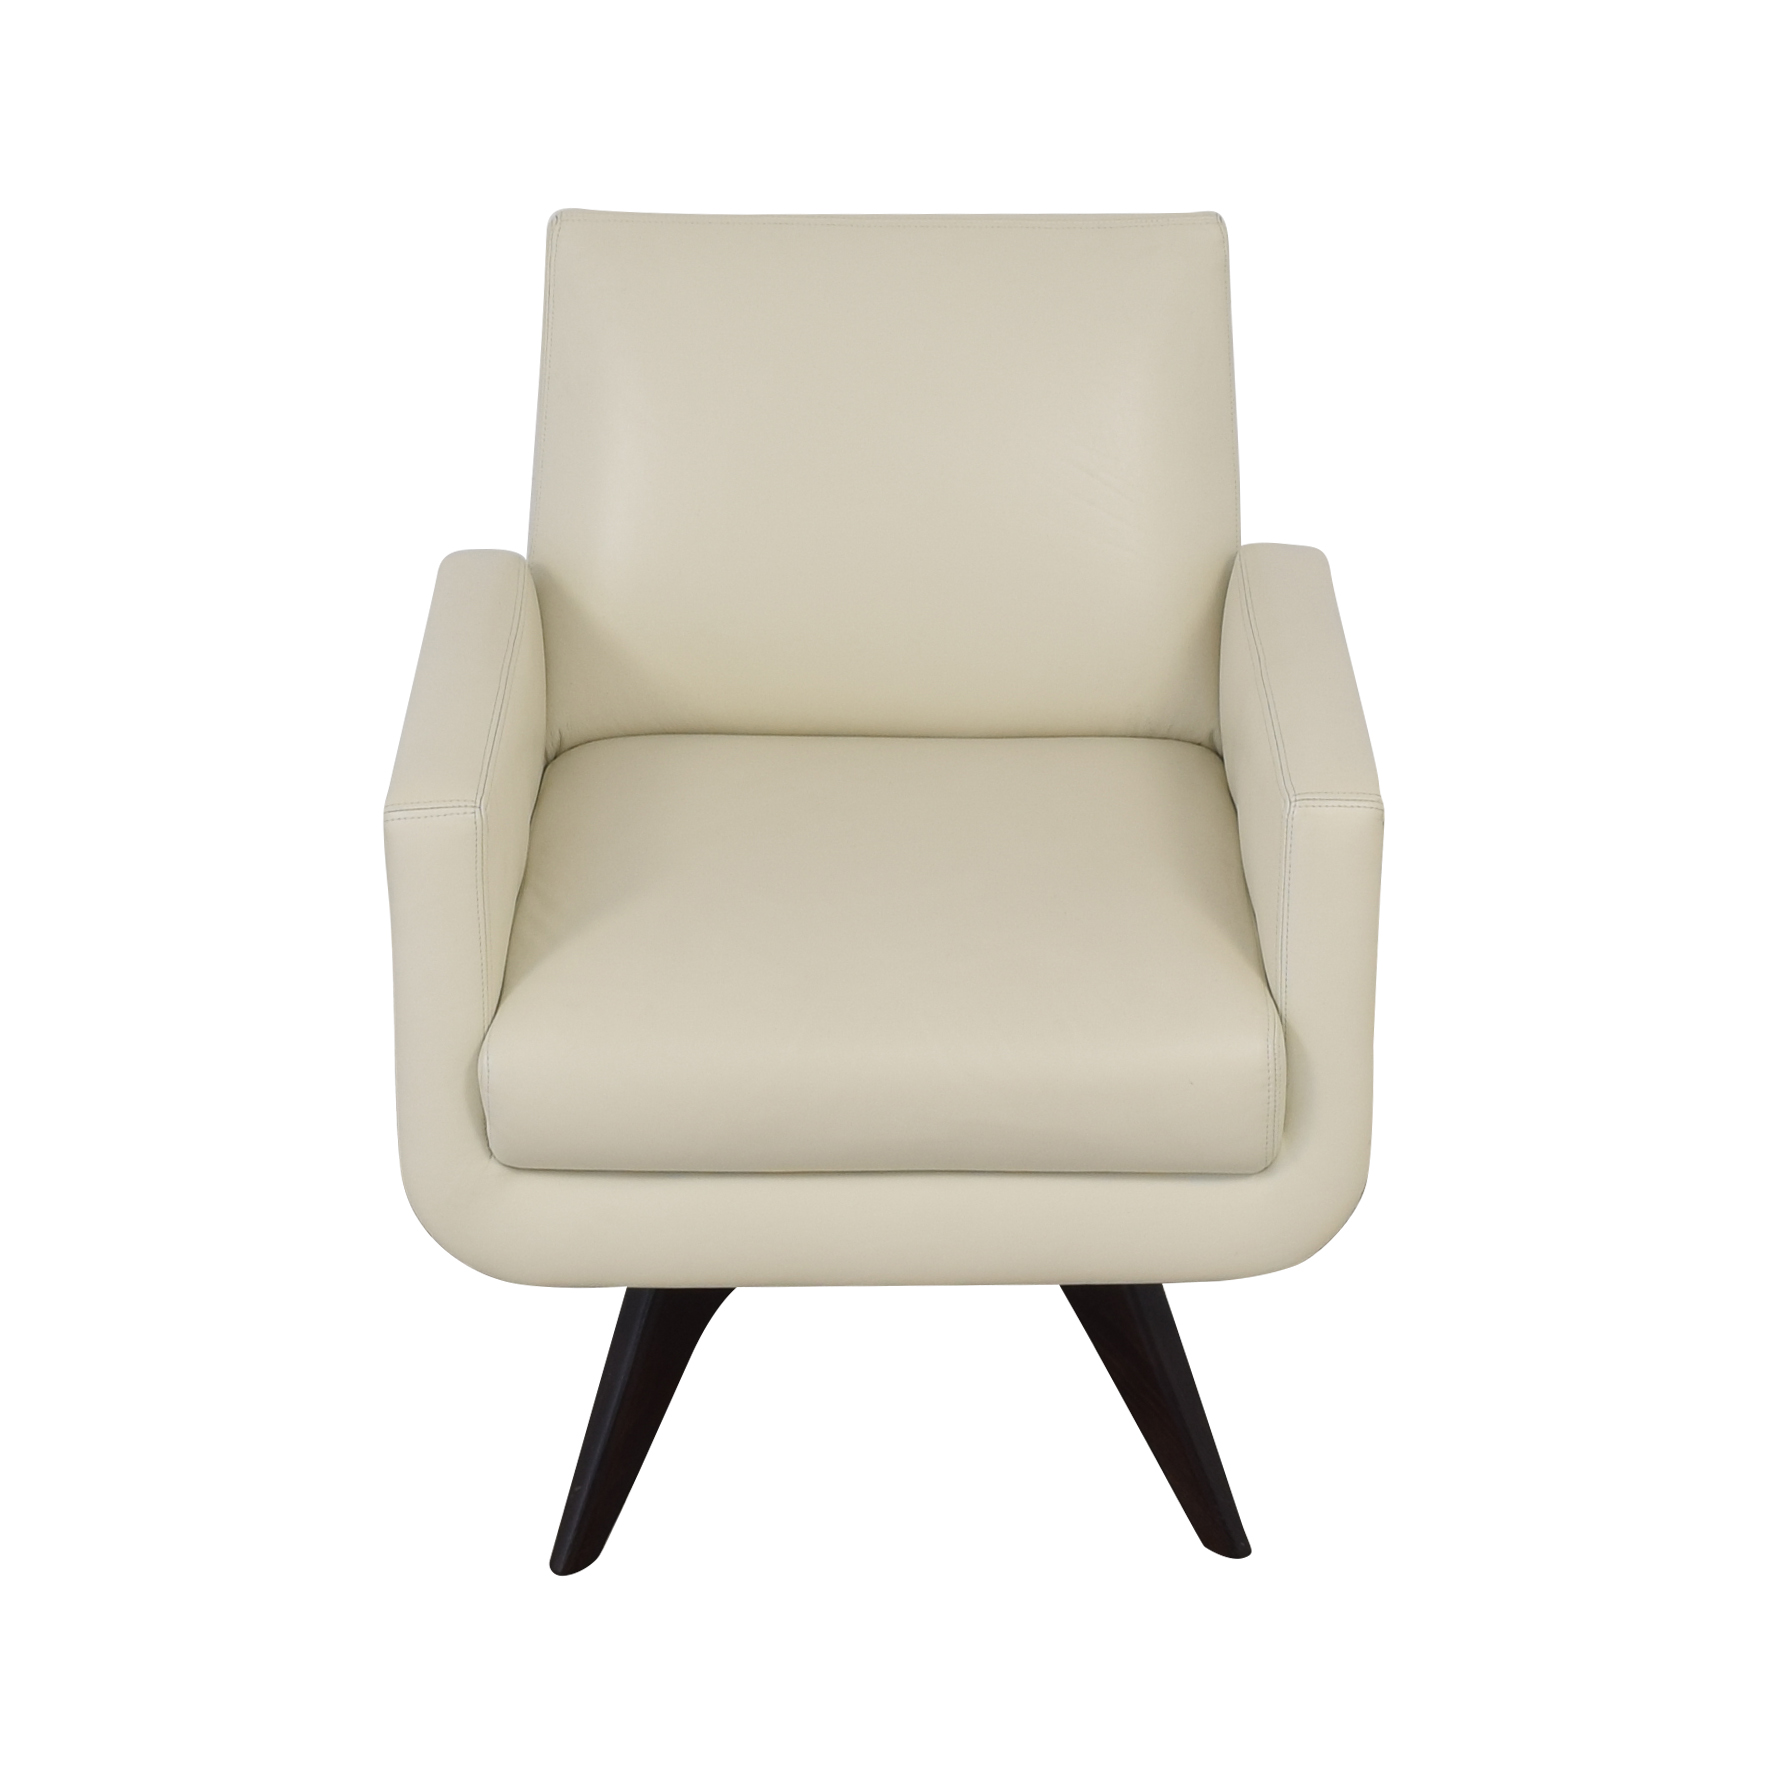 shop Interlude Home Landon Chair Interlude Home Chairs